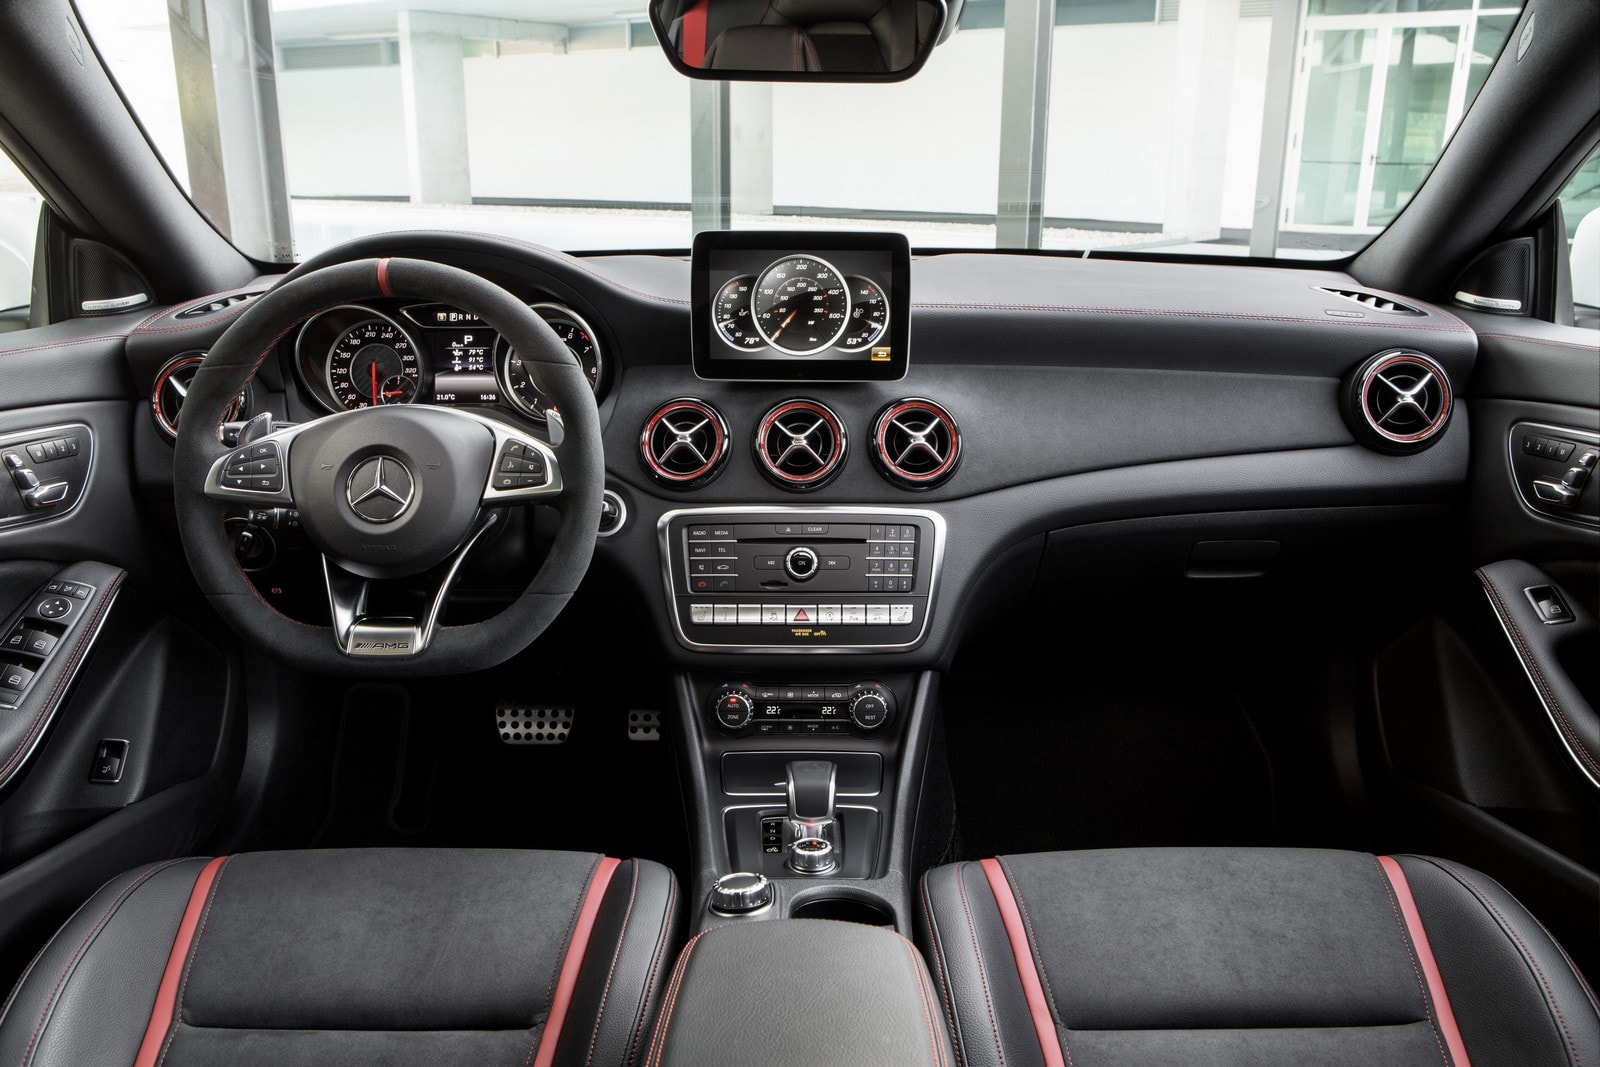 Mercedes-AMG CLA 45 4MATIC 2016 (7)